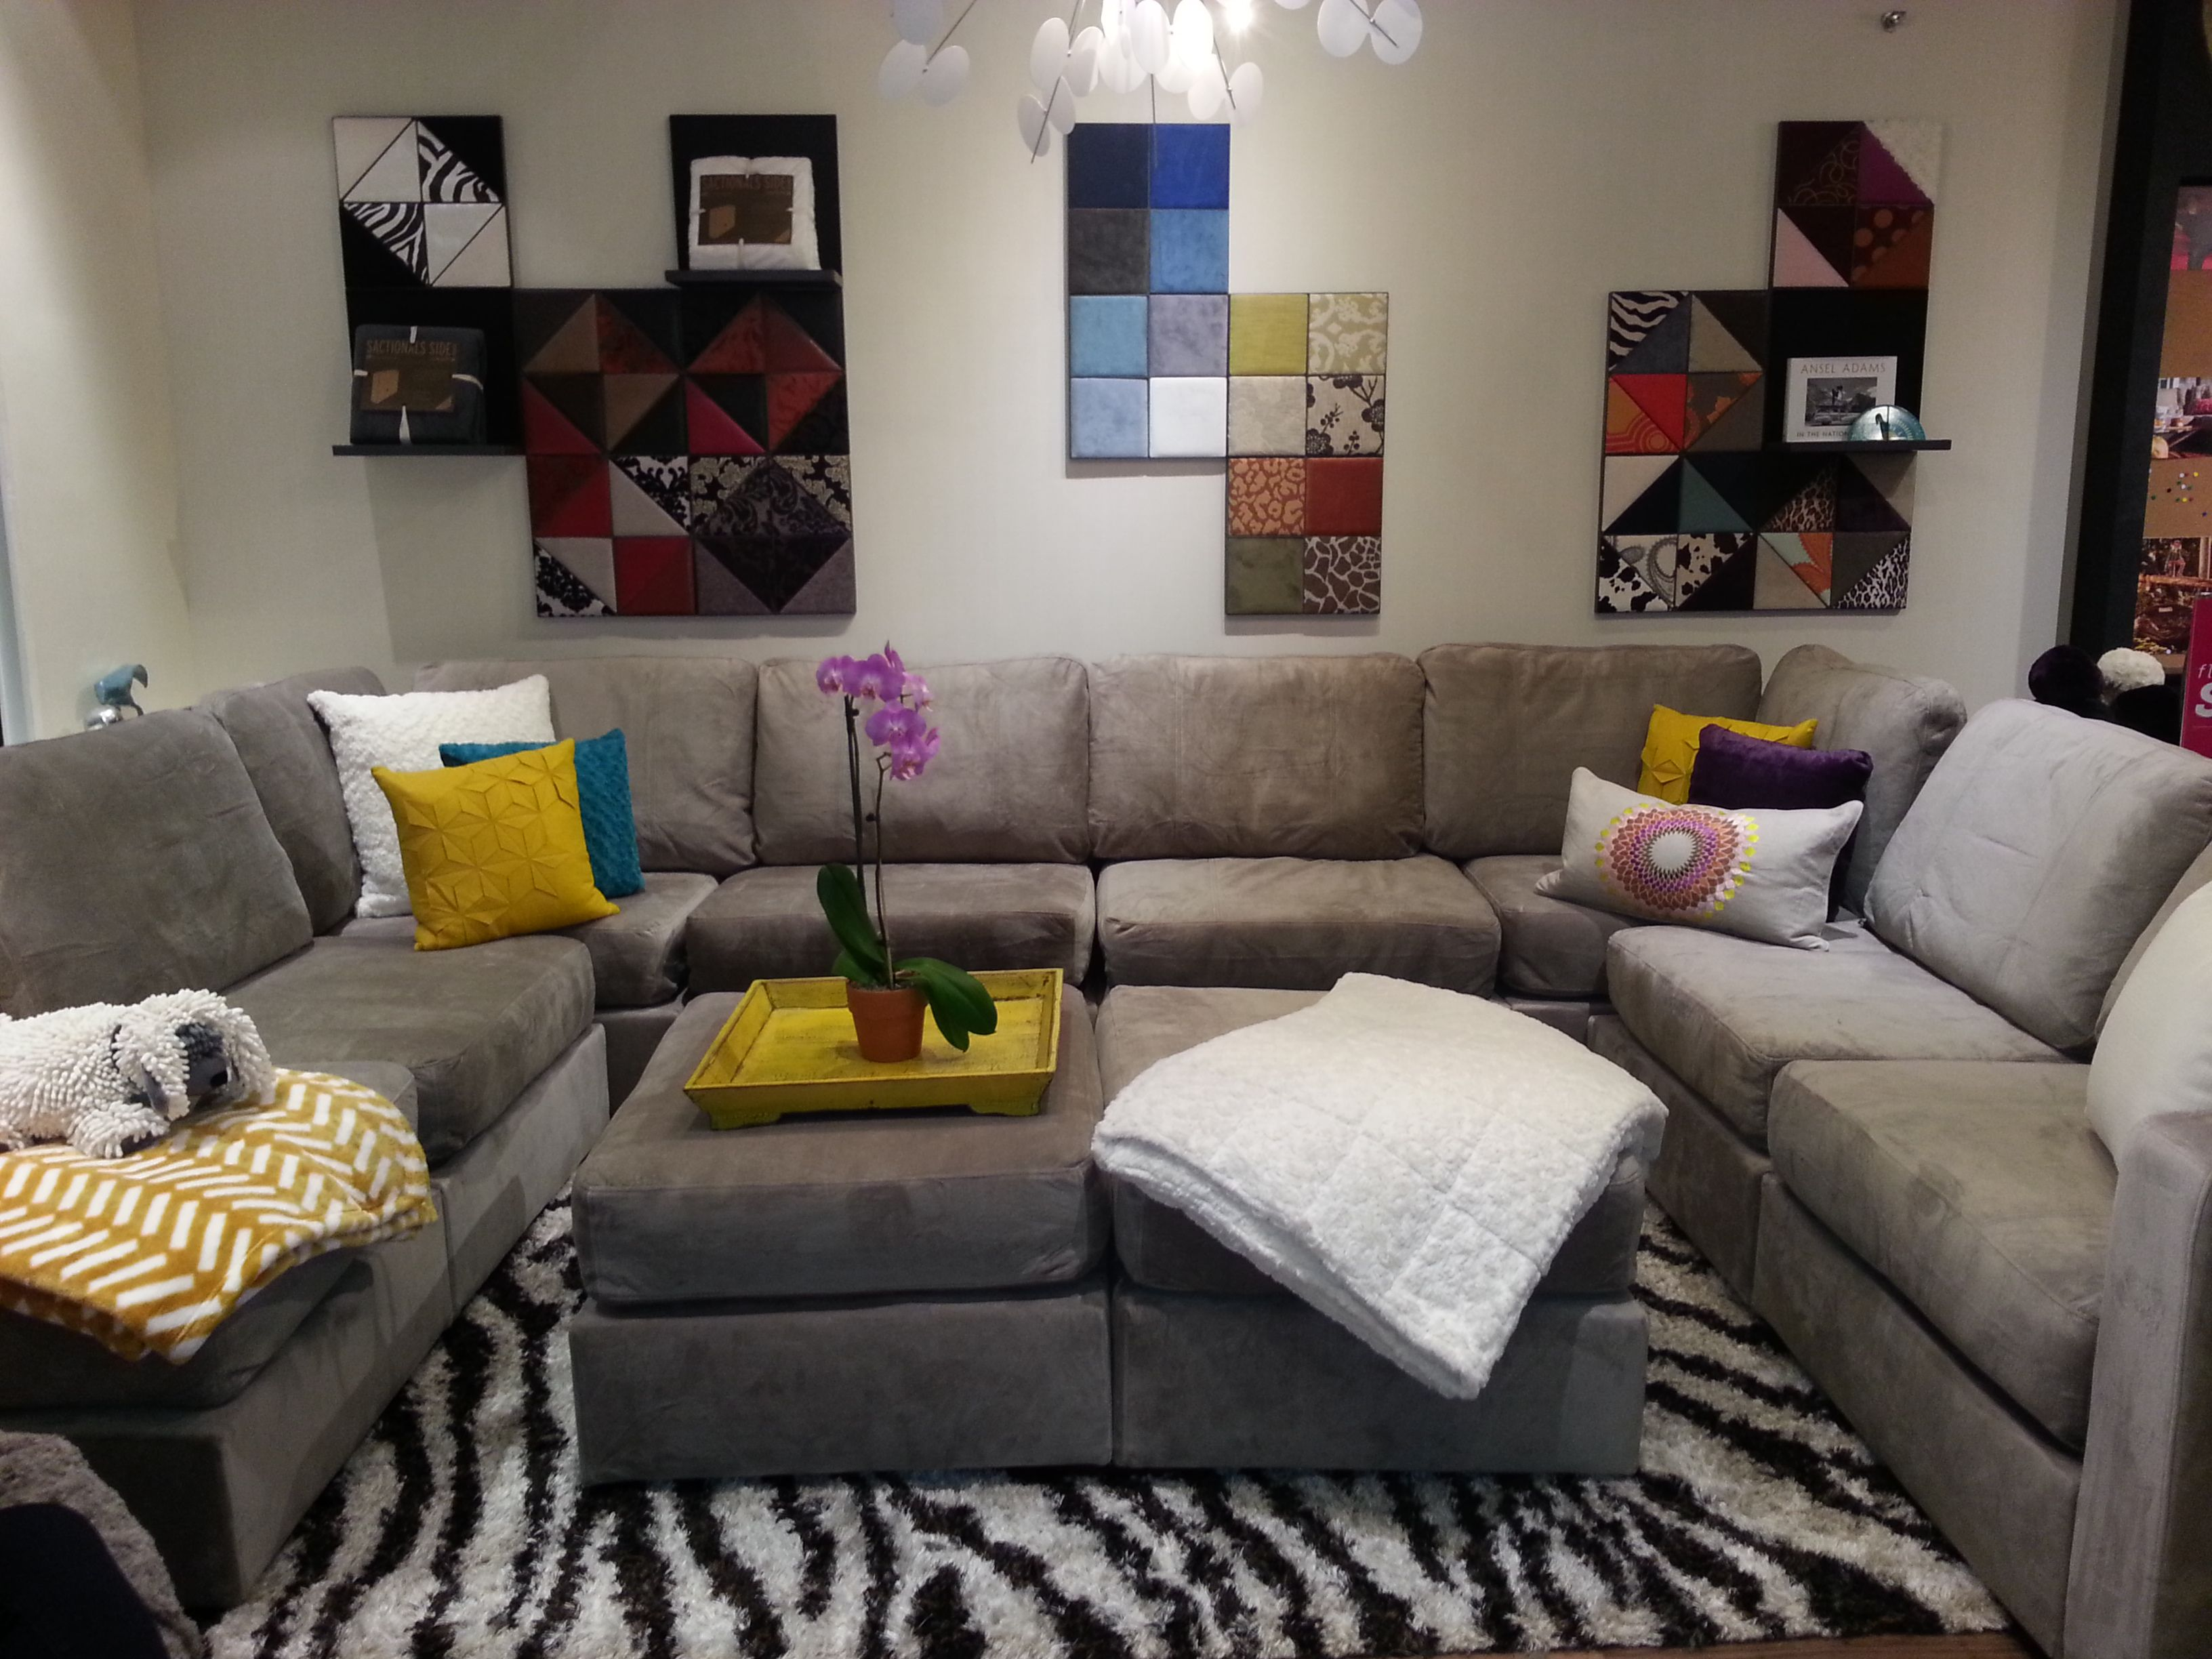 Lovesac sactionals So many options for your couch Description